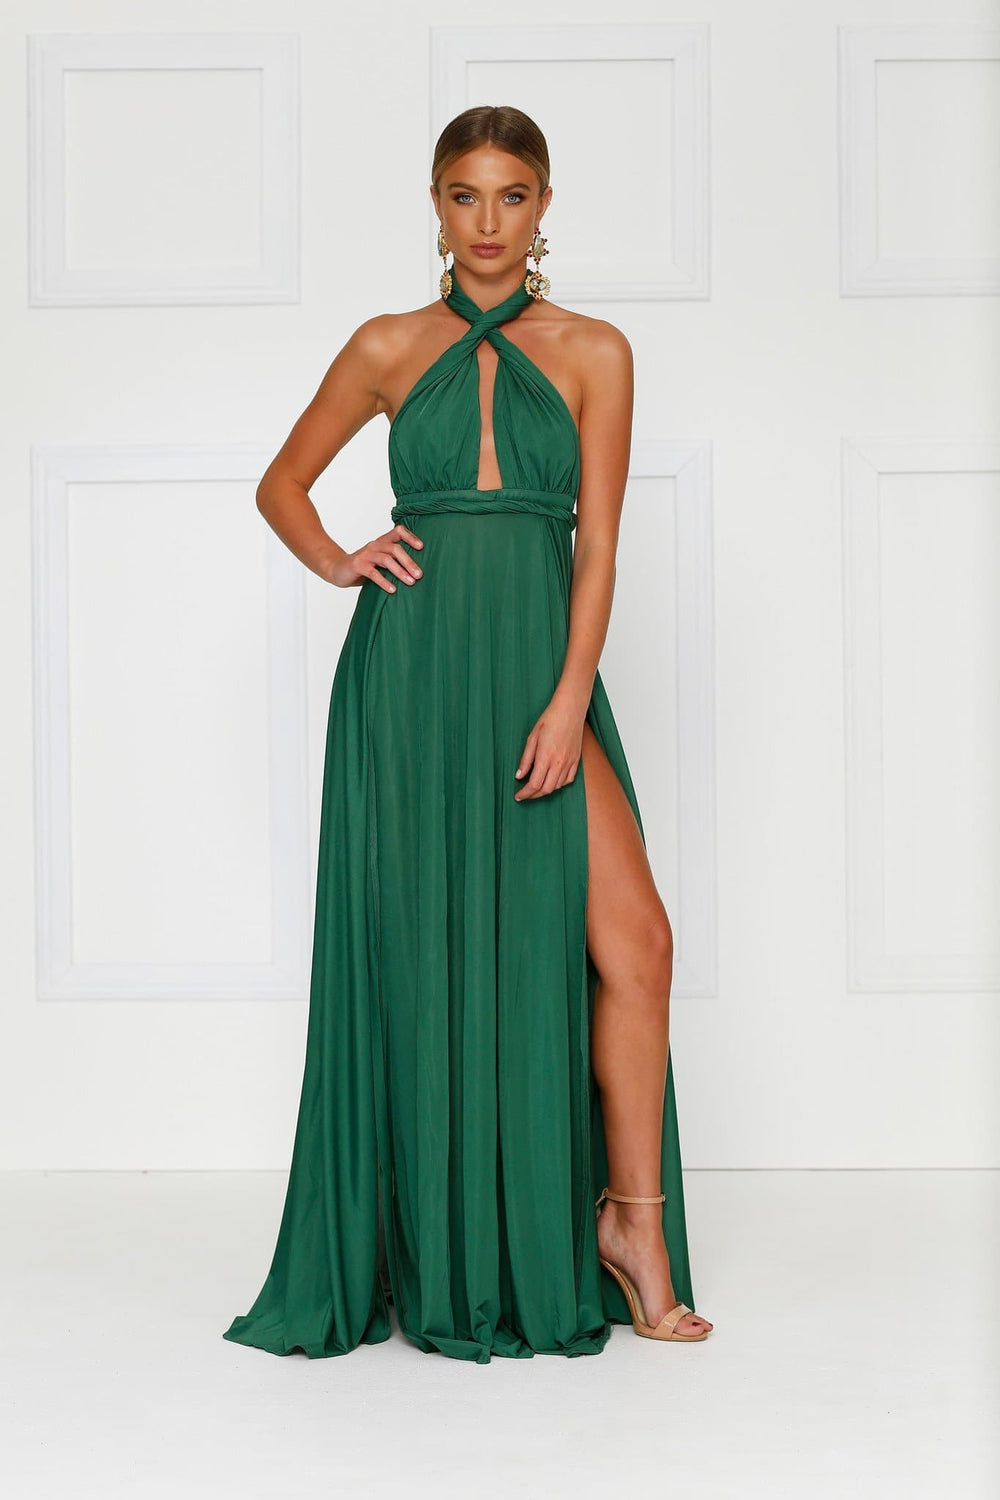 Catalina - Emerald Backless Jersey Gown with Plunge Neck & Side Slits